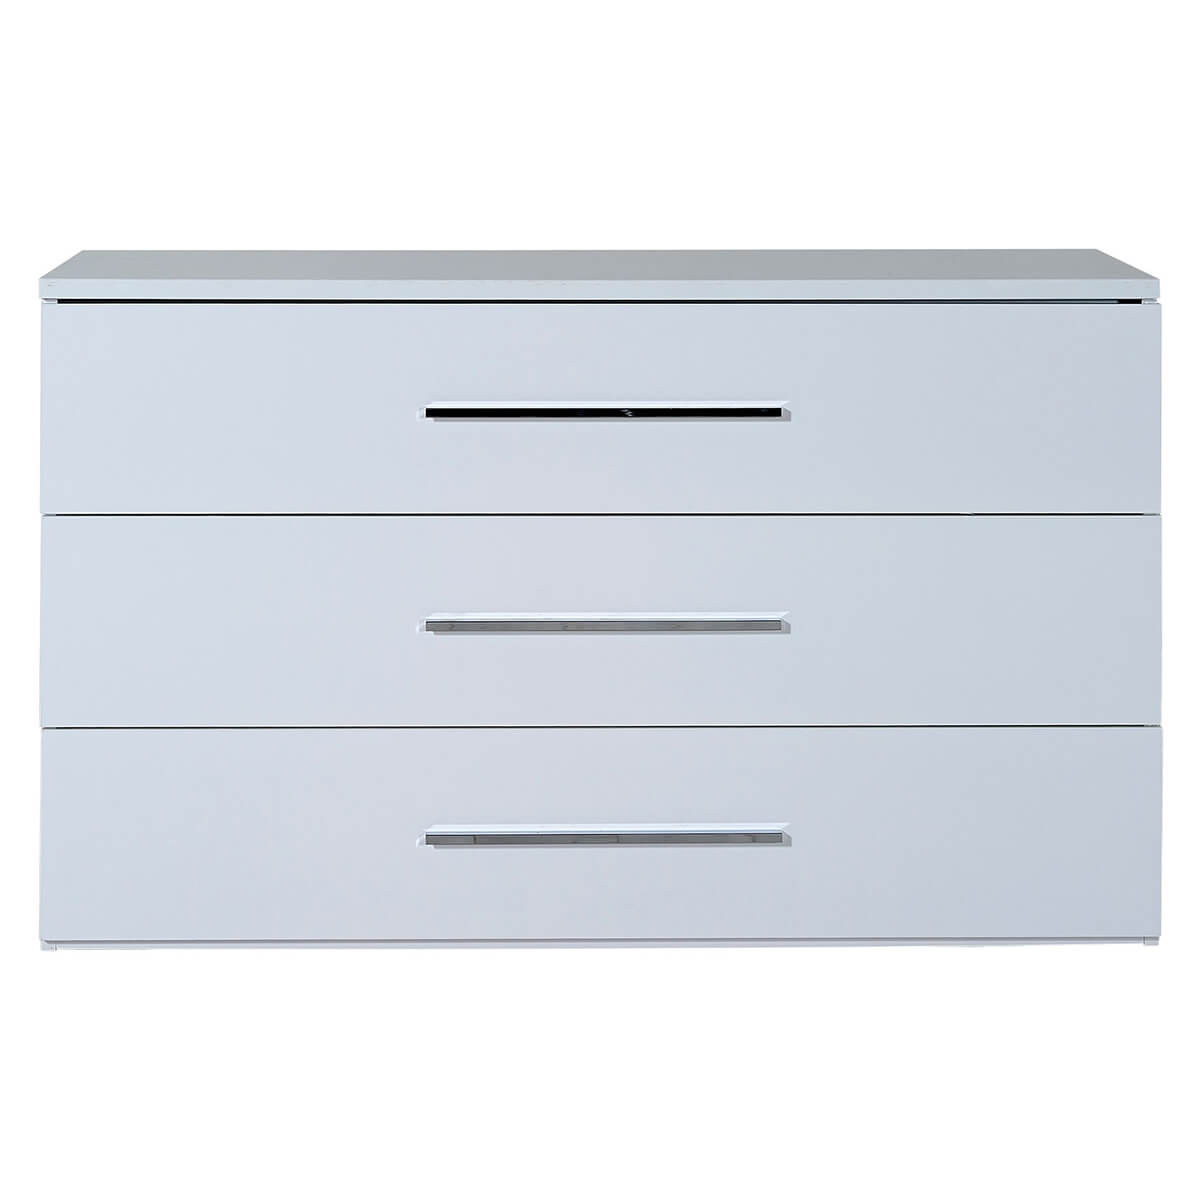 delta drawer drw chests angle drawers hi grey res side children products dresser view